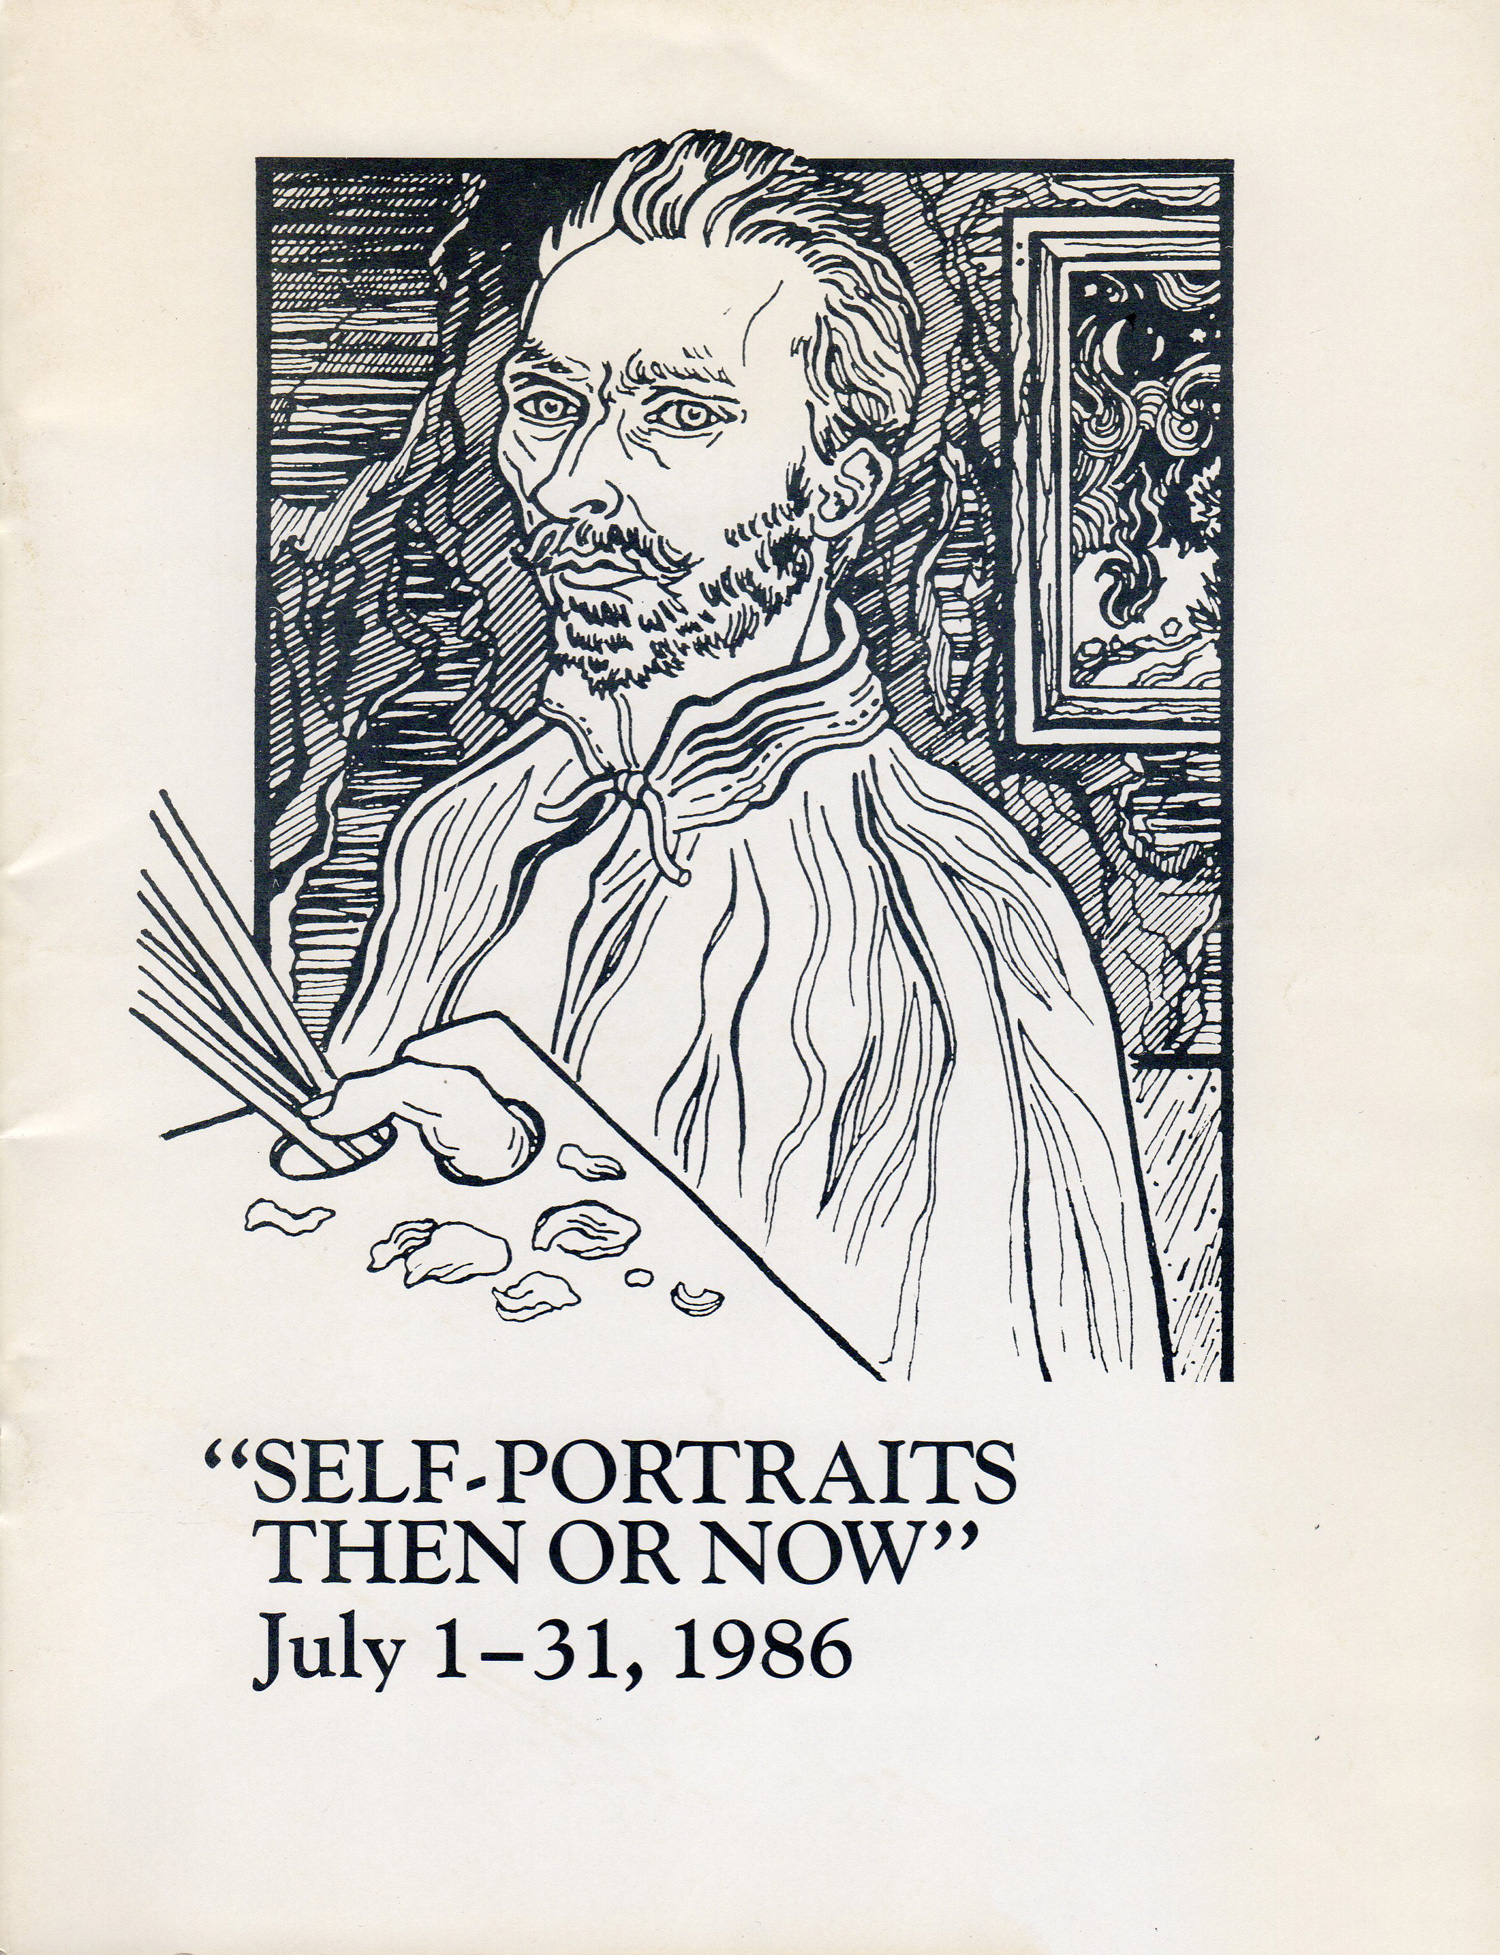 Self-Portraits Then or Now  documents a juried exhibition of 55 artists from Illinois. An essay by James Yood considers the history of portraiture and the contemporary self-portrait.